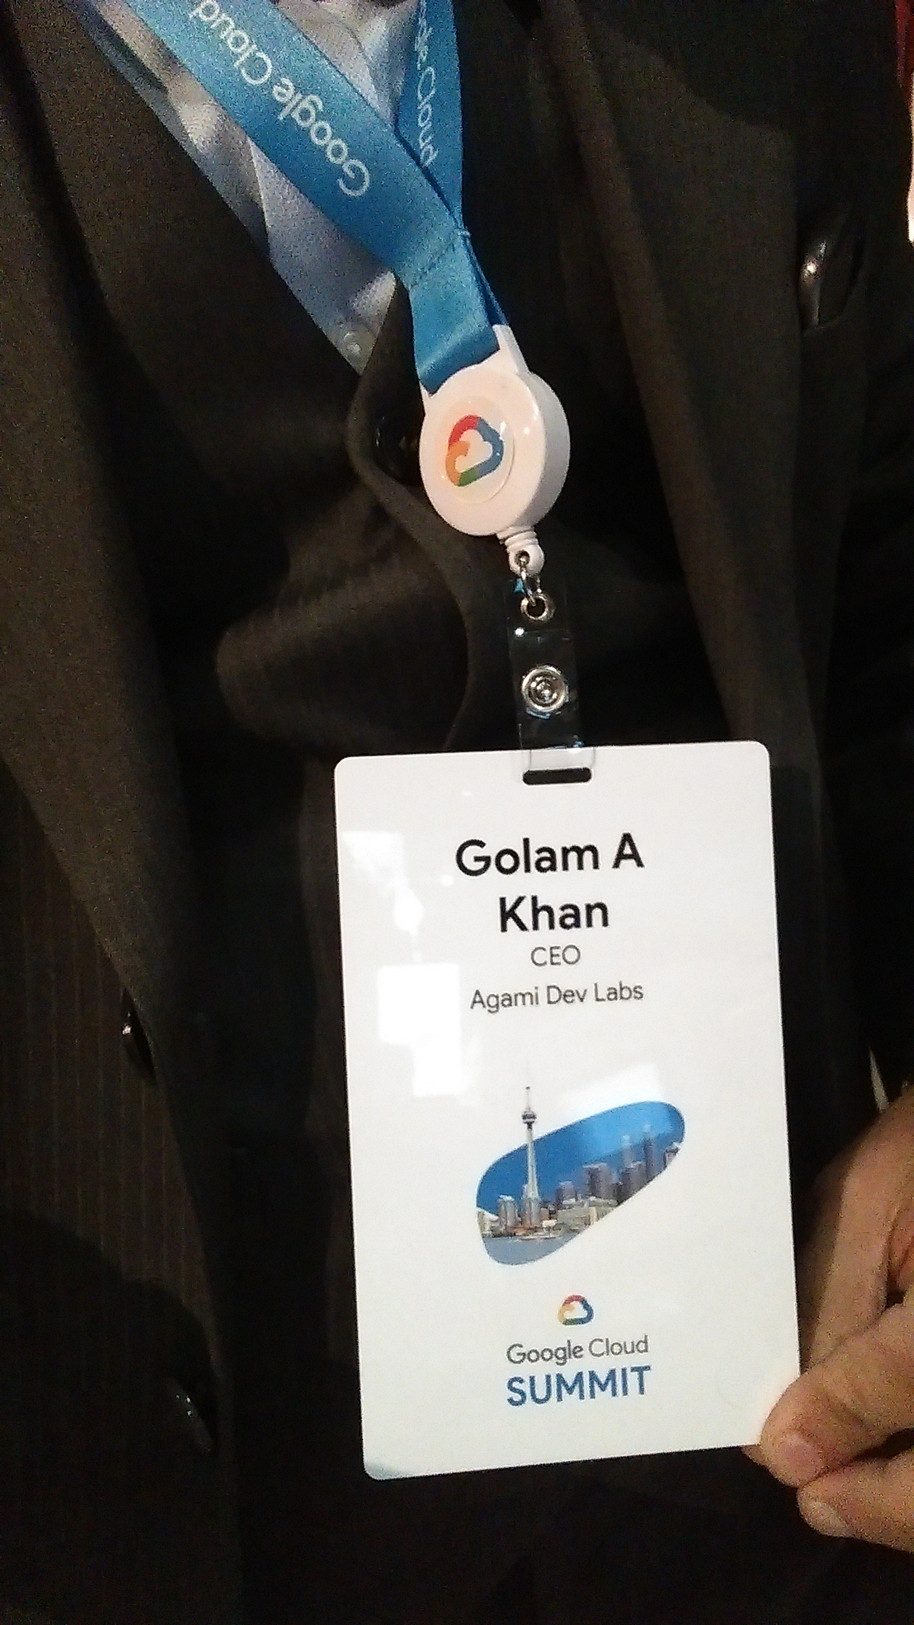 Agami Dev Labs @ Google Cloud Summit 2018